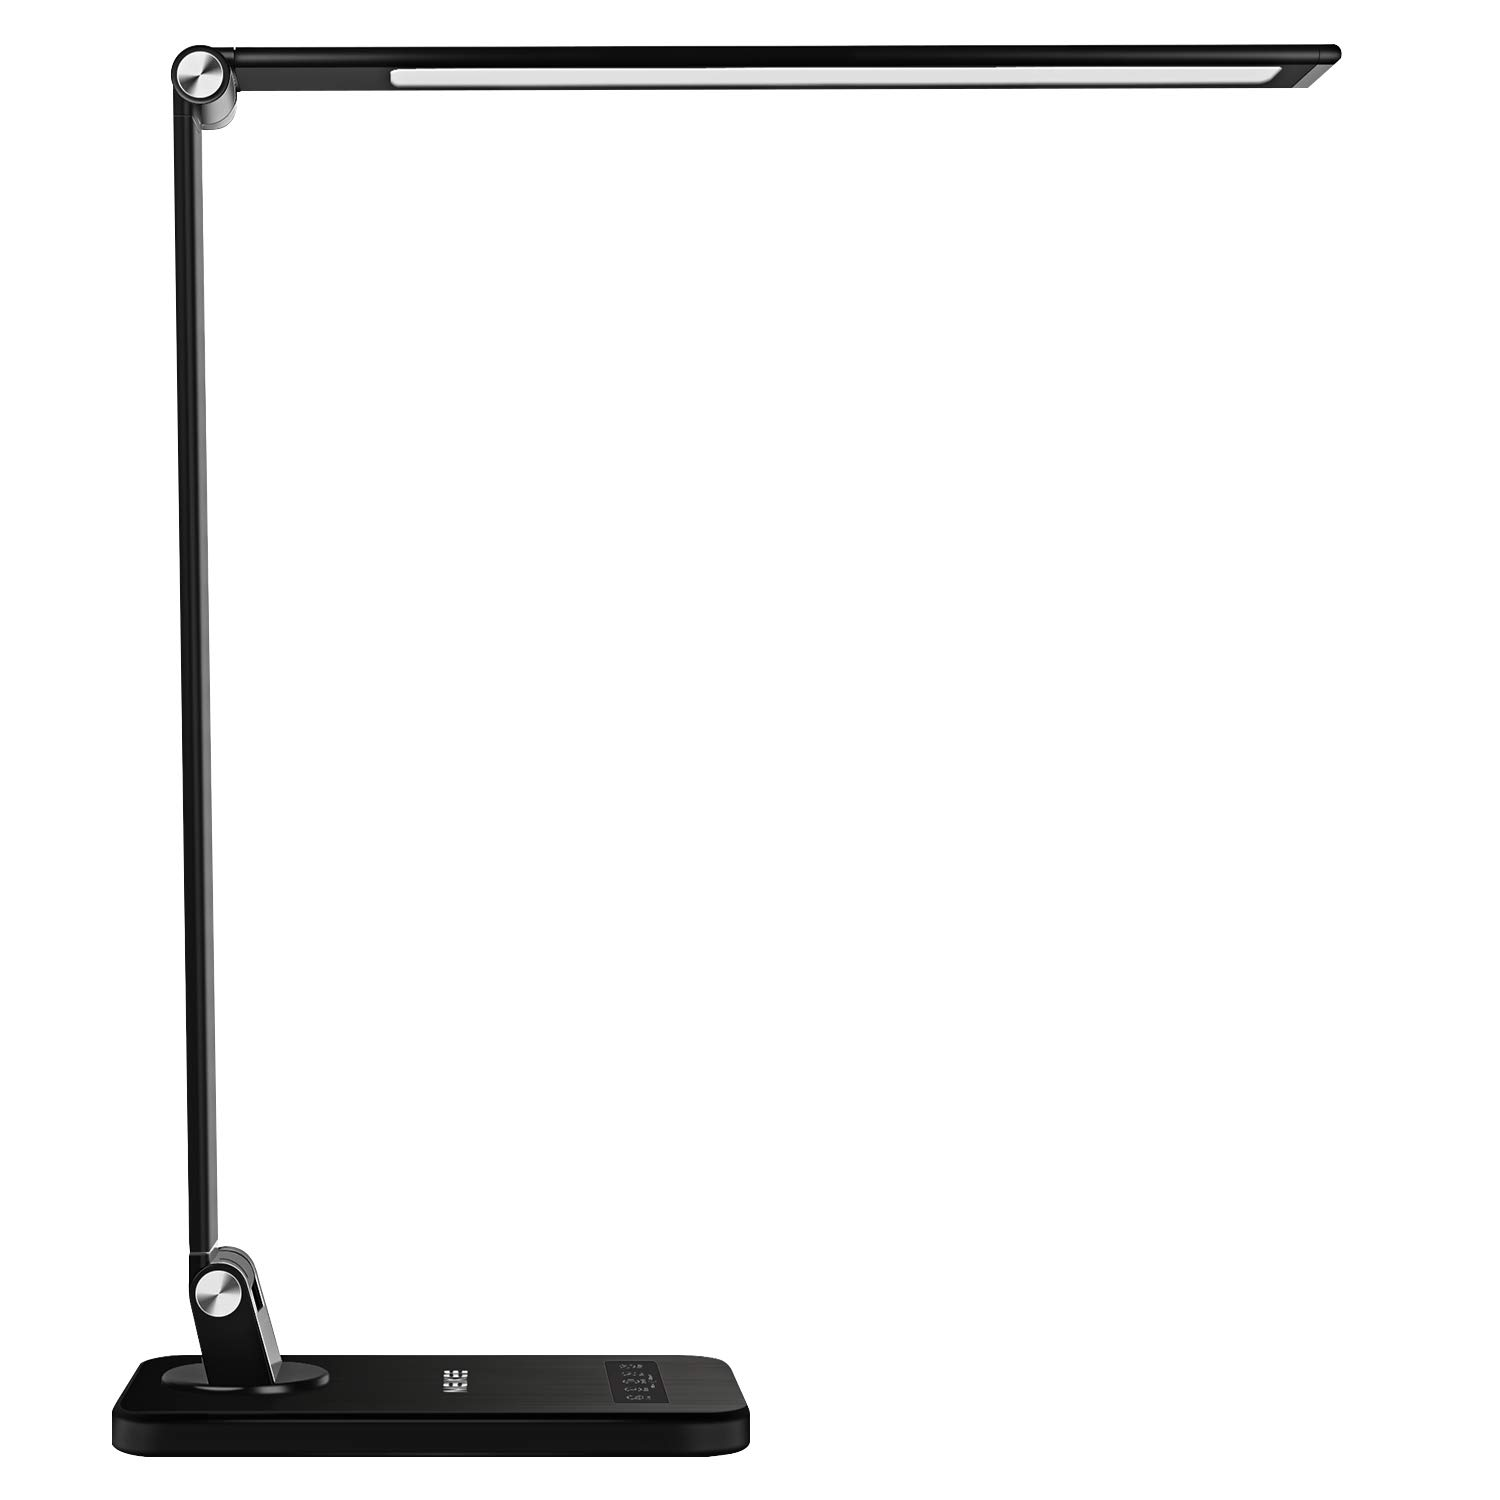 MEIKEE LED Desk Lamp,Aluminum Dimmable Table Lamp,5 Lighting Models with 8 Brightness Levels,Touch Control and Memory Function,30min/60min Auto Timer,5V/1A USB Charging Port,12W,Black by MEIKEE